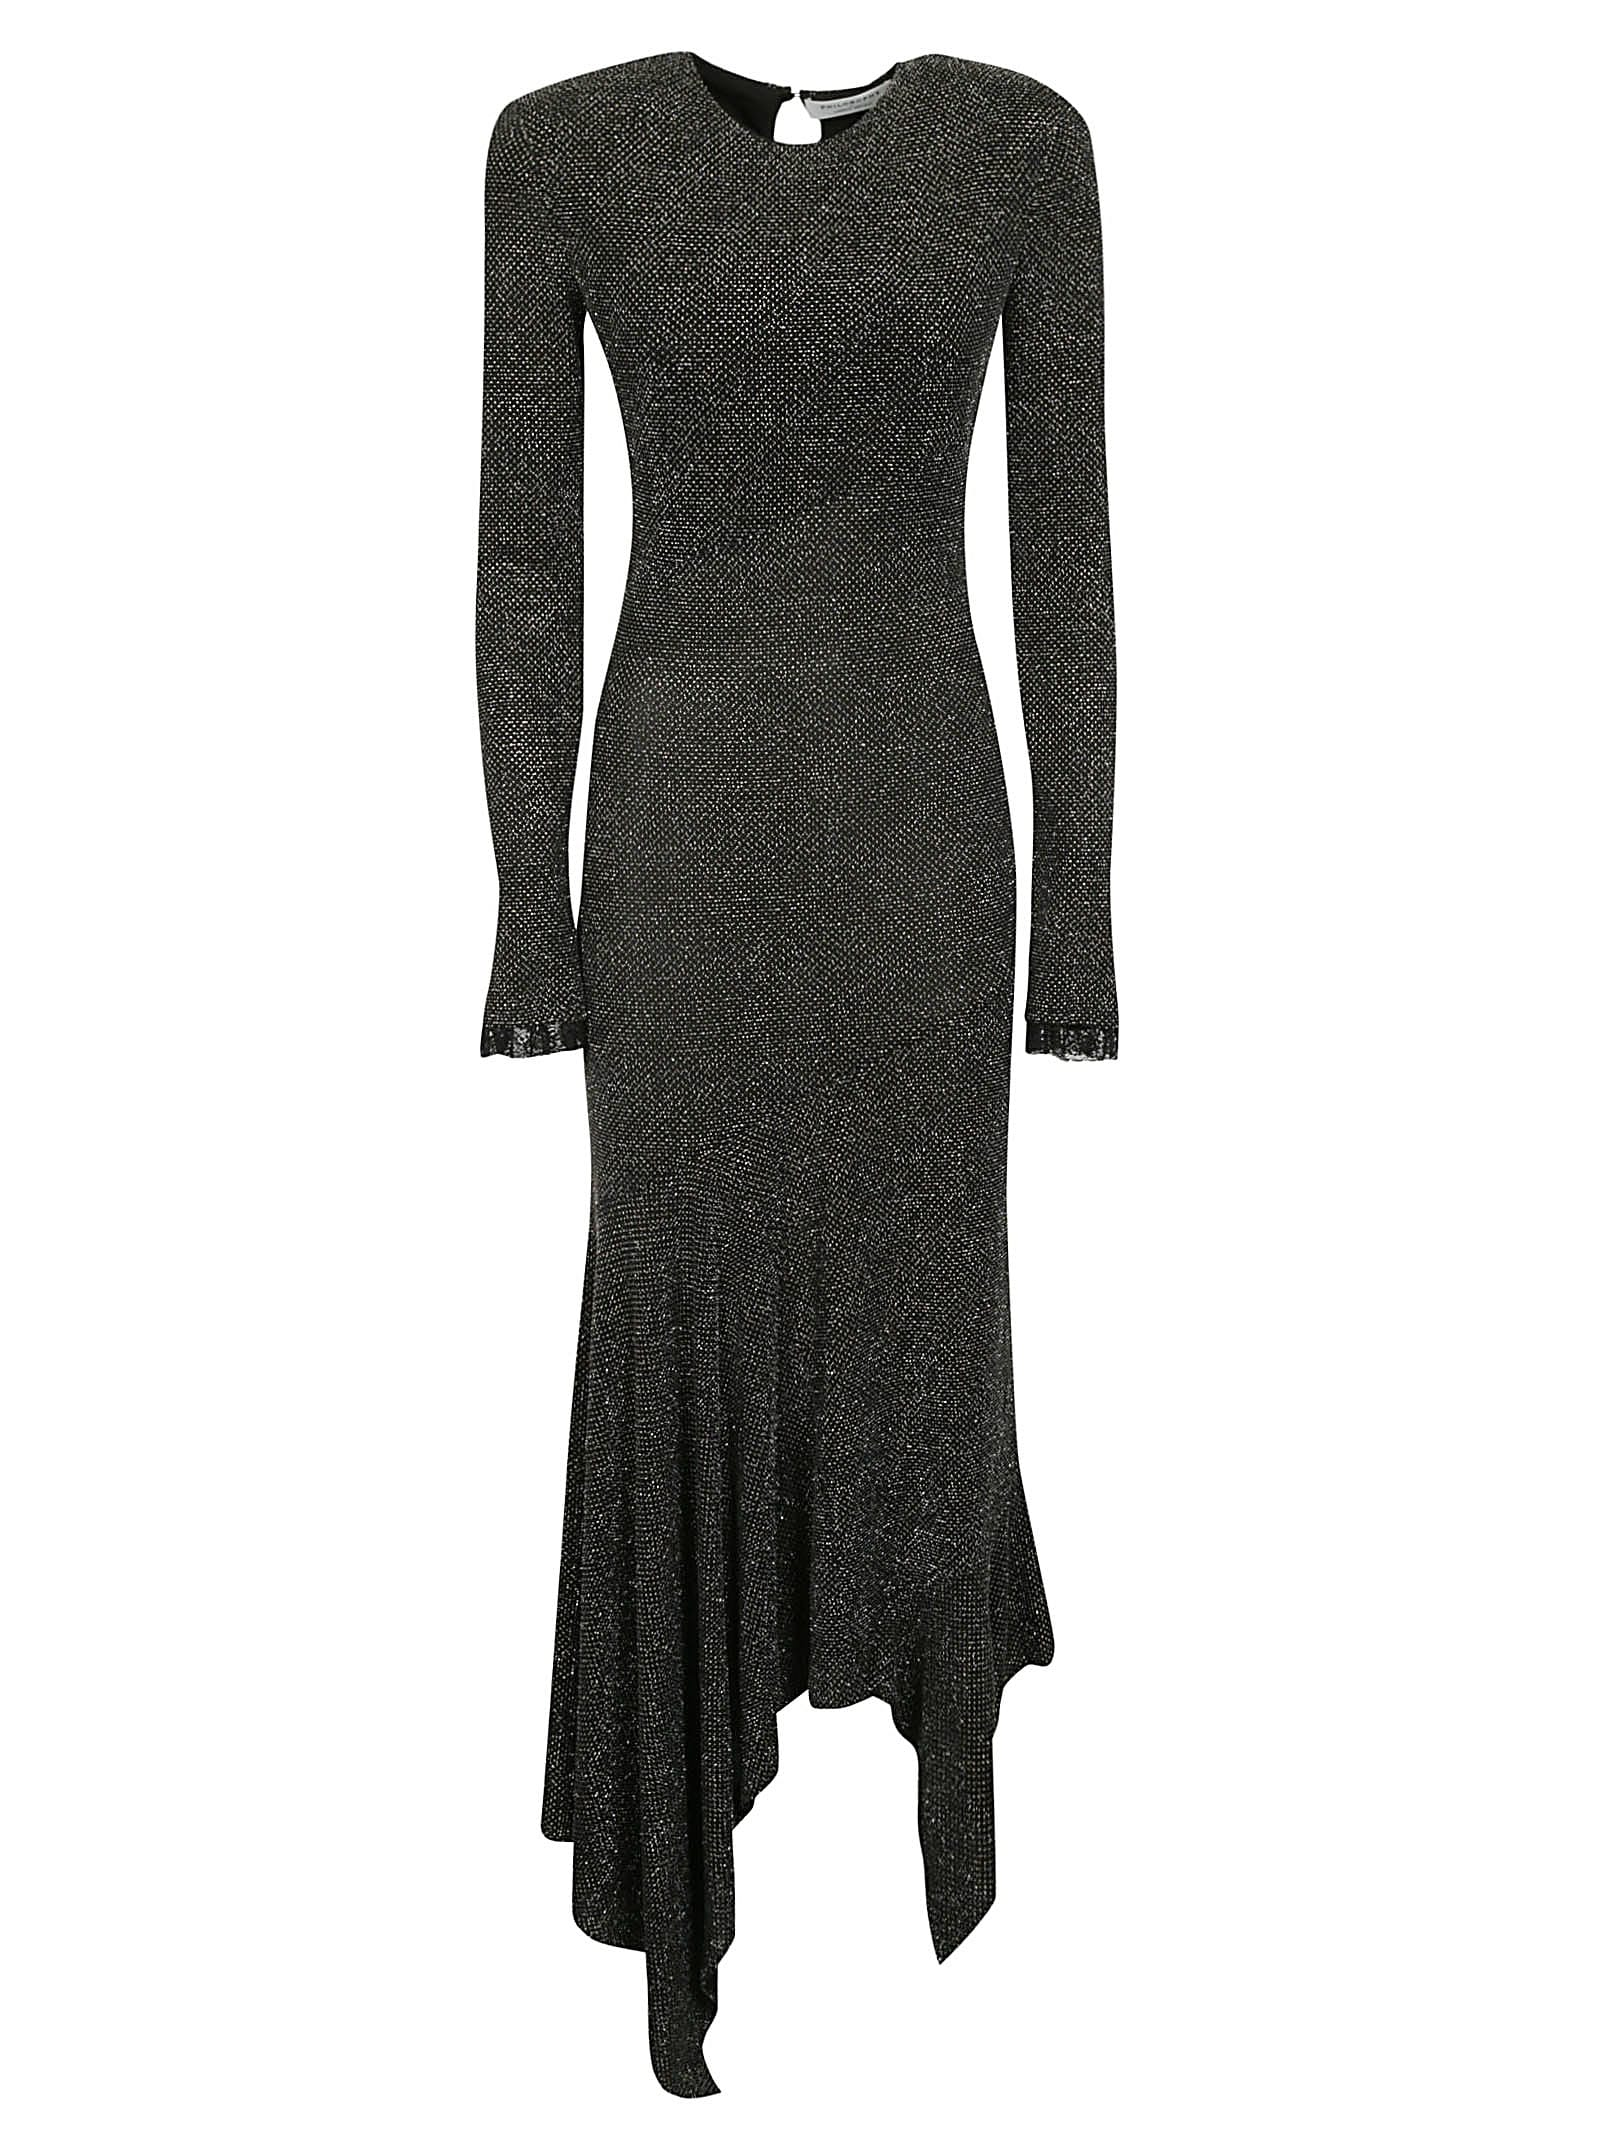 Philosophy di Lorenzo Serafini Asymmetric Dress